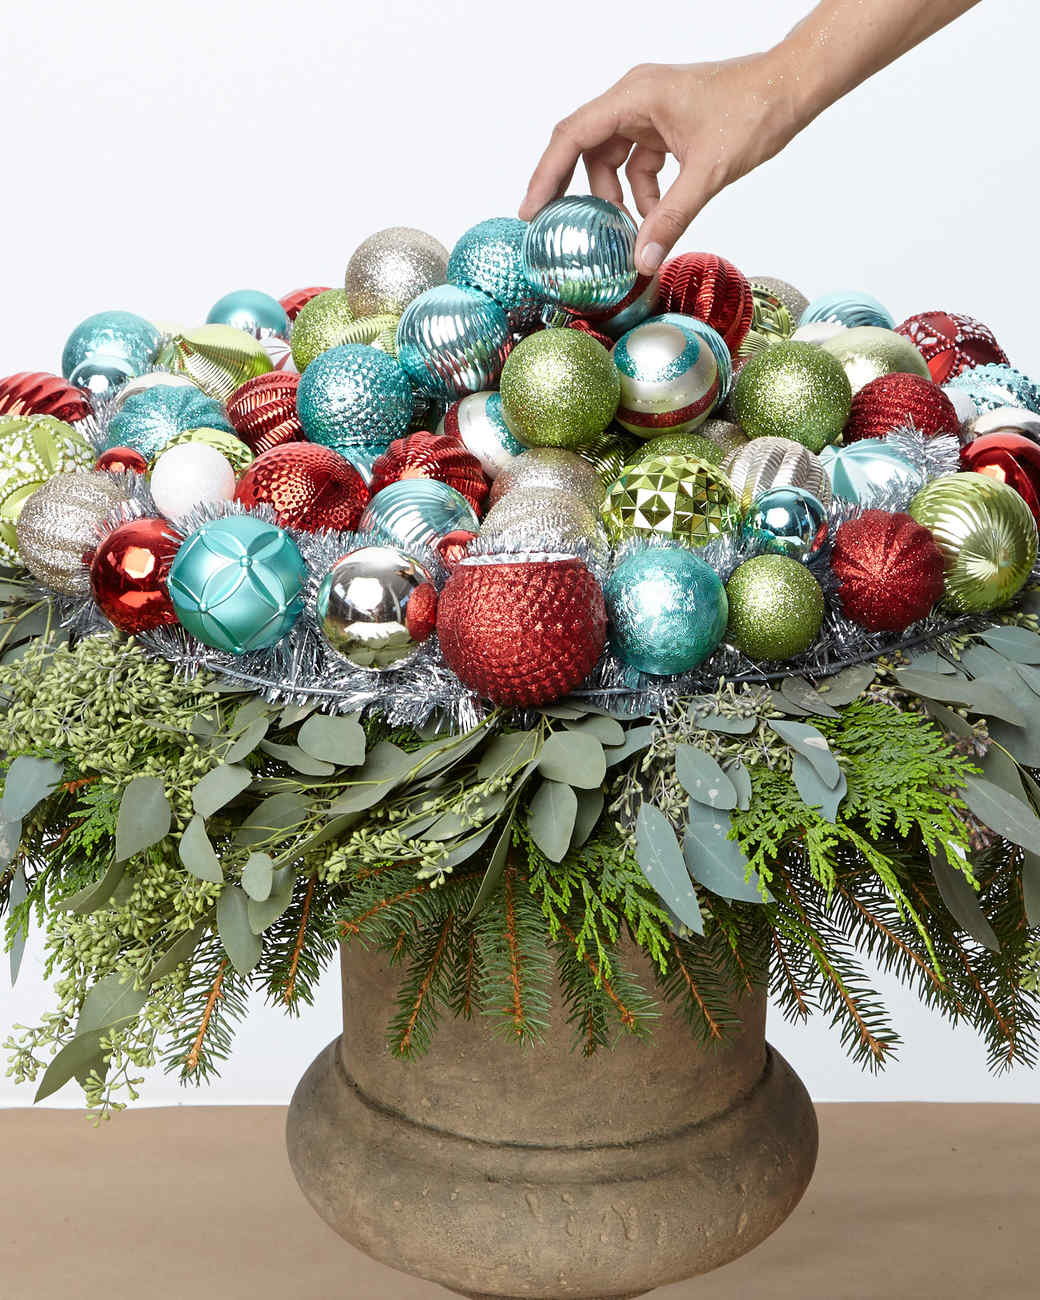 Martha Stewart Christmas Decoration Part - 43: Christmas In A Box: A No-Excuses Holiday Decorating Guide | Martha Stewart